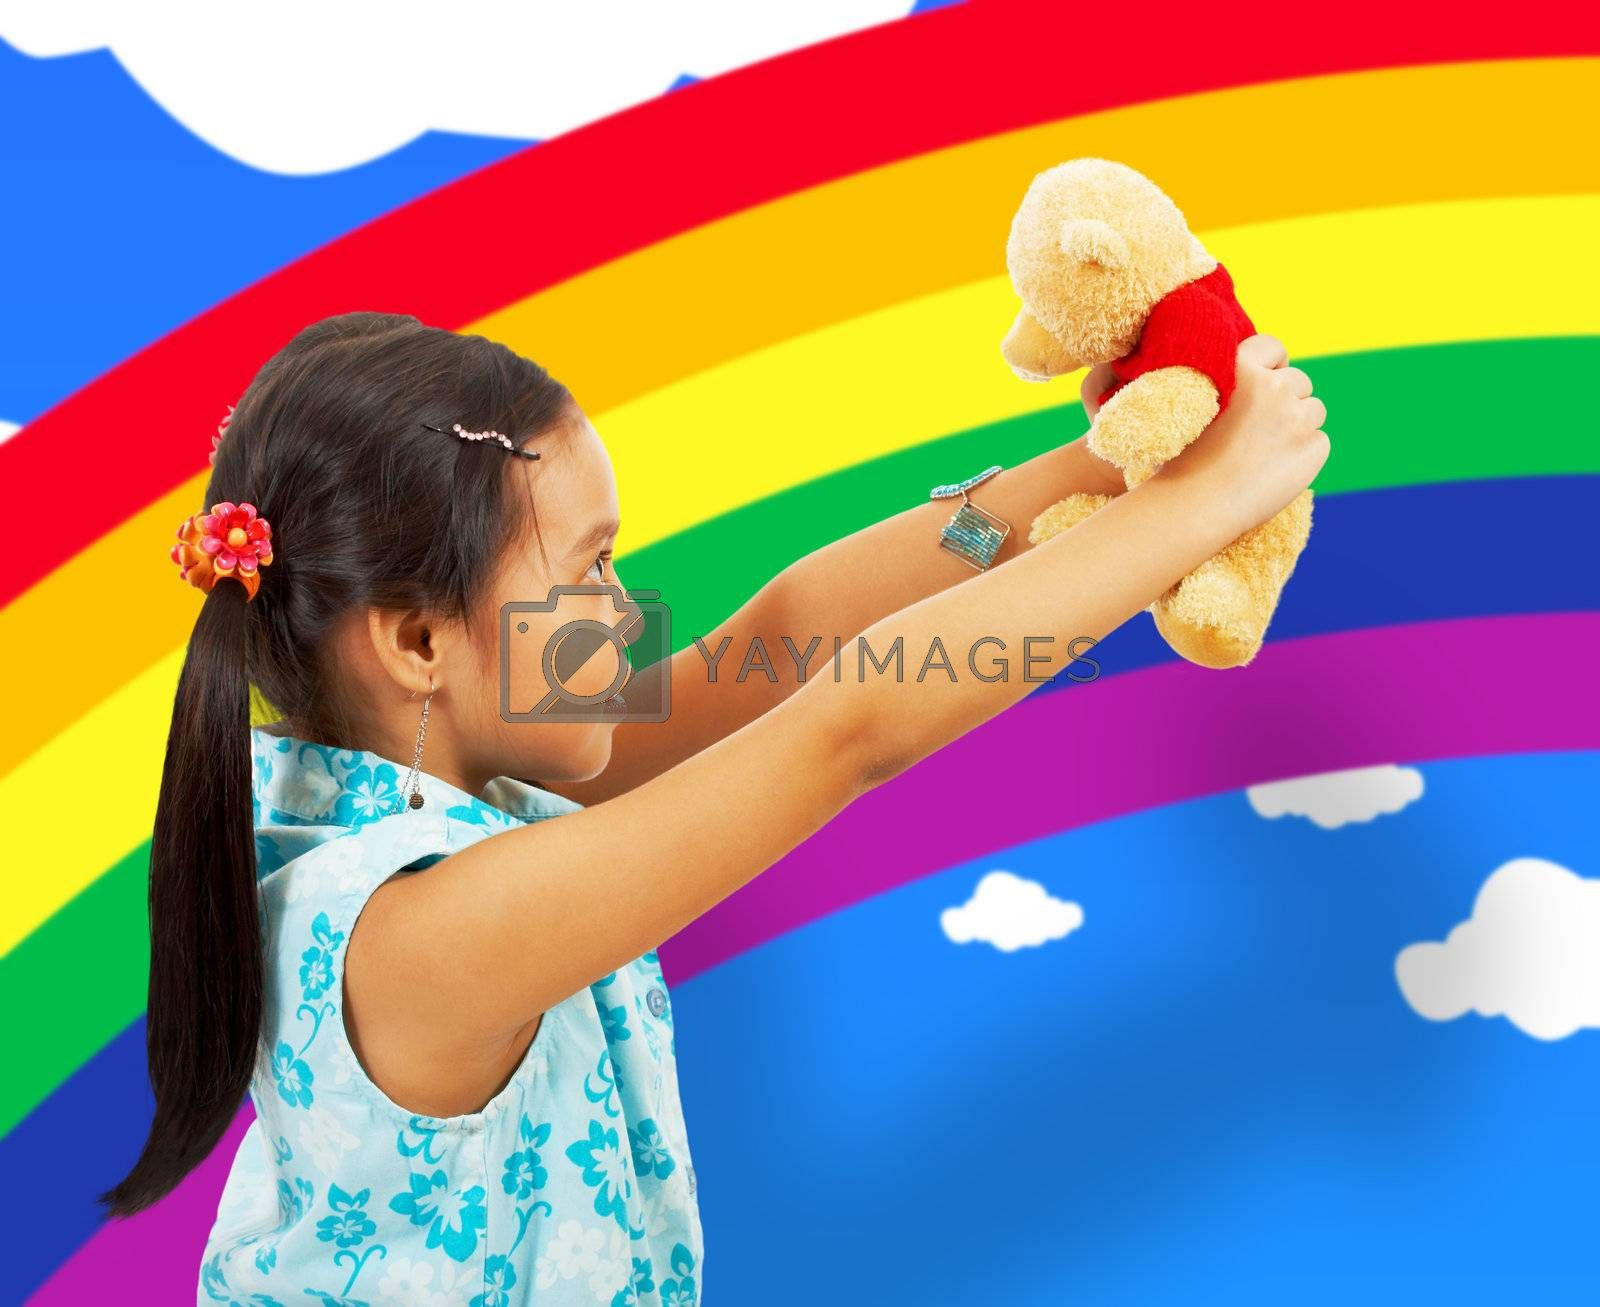 Young Girl Playing With Her Teddybear In Her Playroom With Rainbow Wallpaper